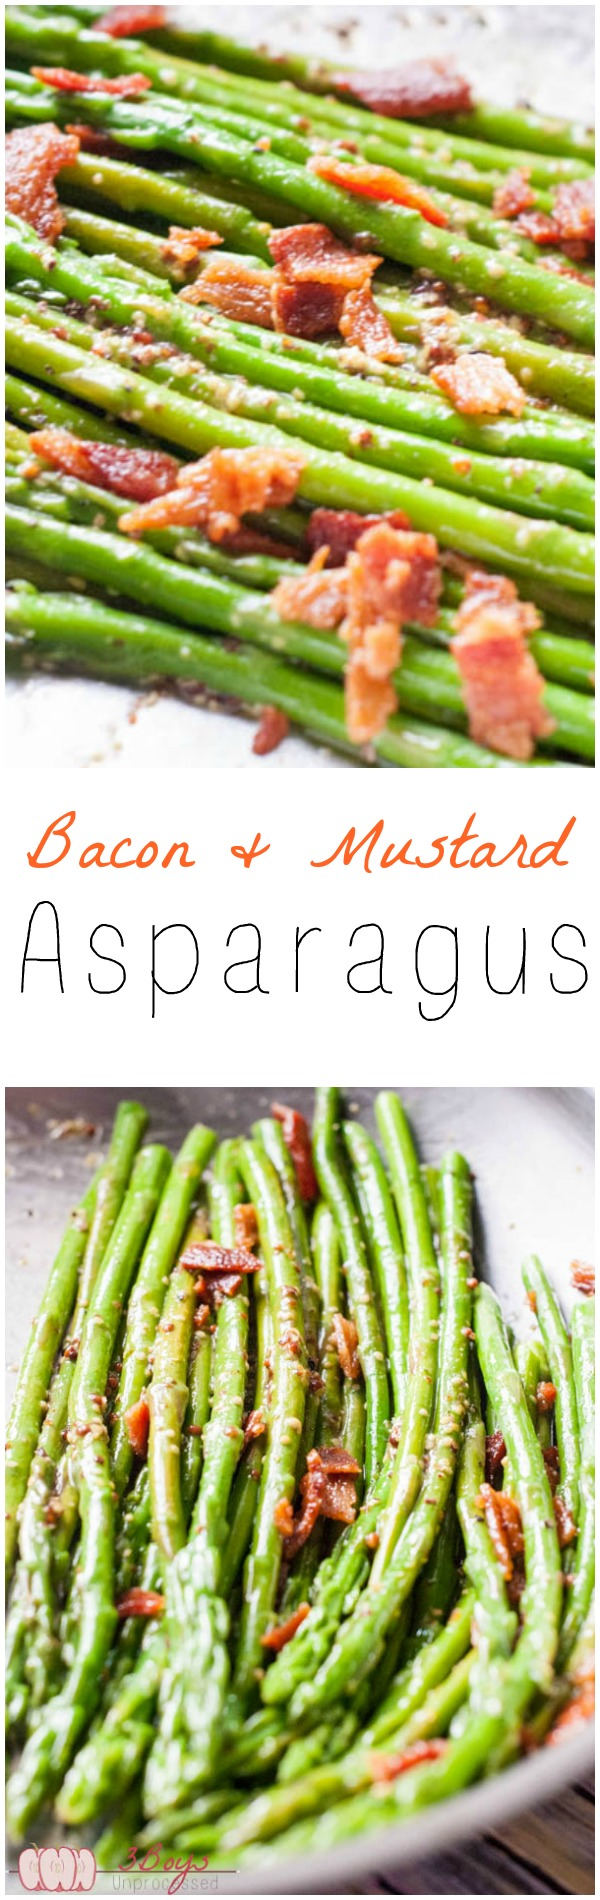 Bacon and Mustard Asparagus - Pretty Little Apron